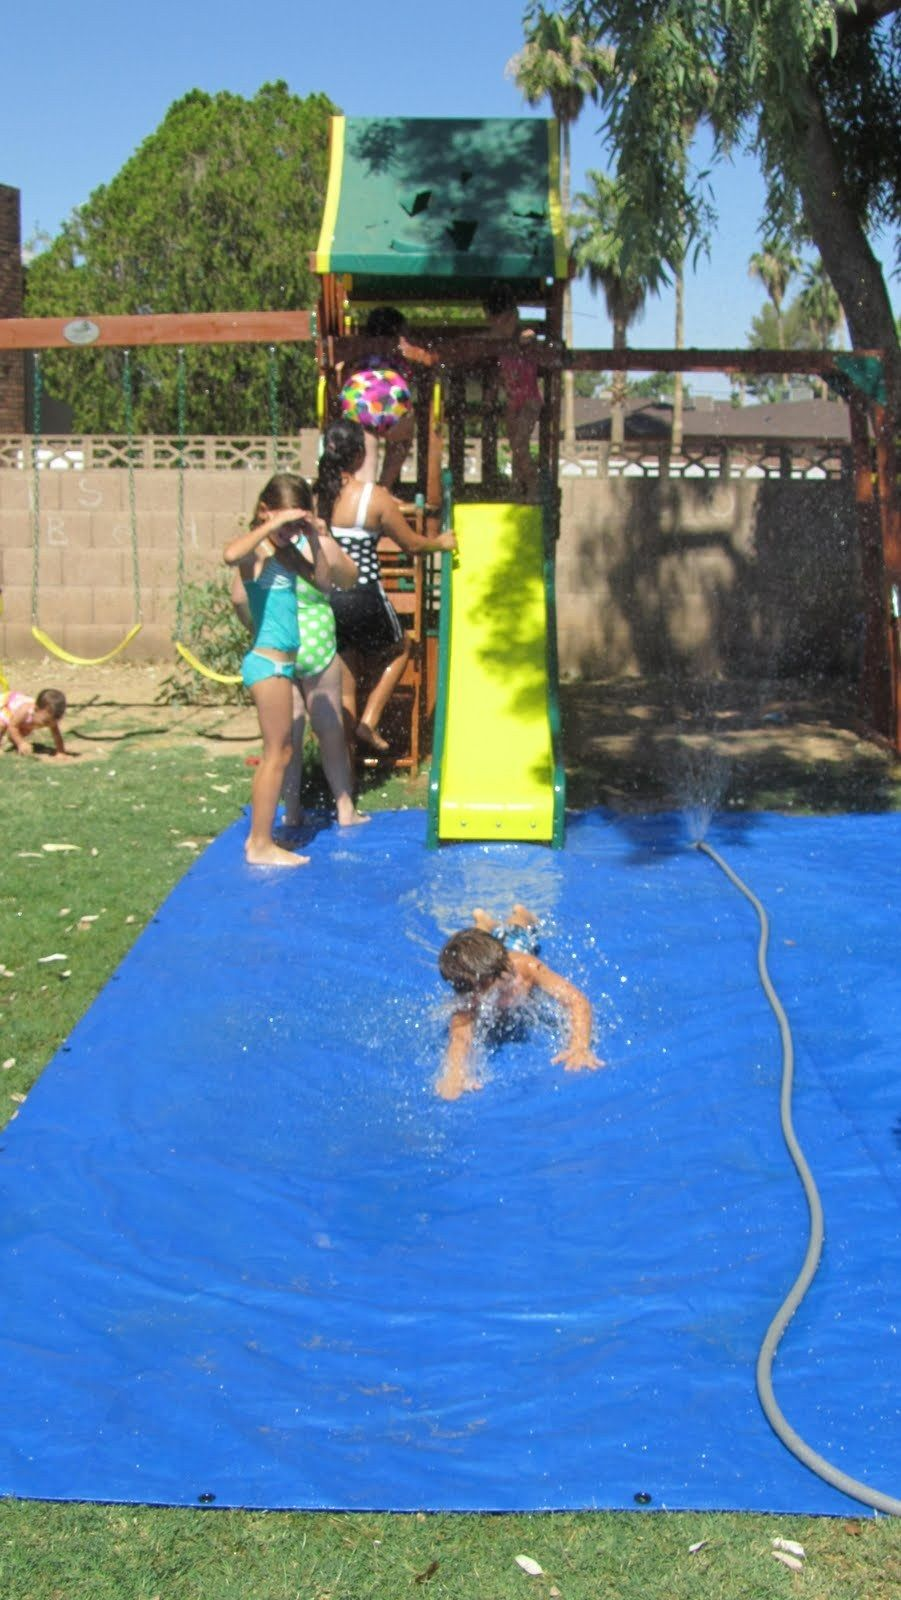 37 Ridiculously Awesome Things To Do In Your Backyard This Summer - A Tarp And Sprinkler Will Create A Fun Splash Pad For A Slide